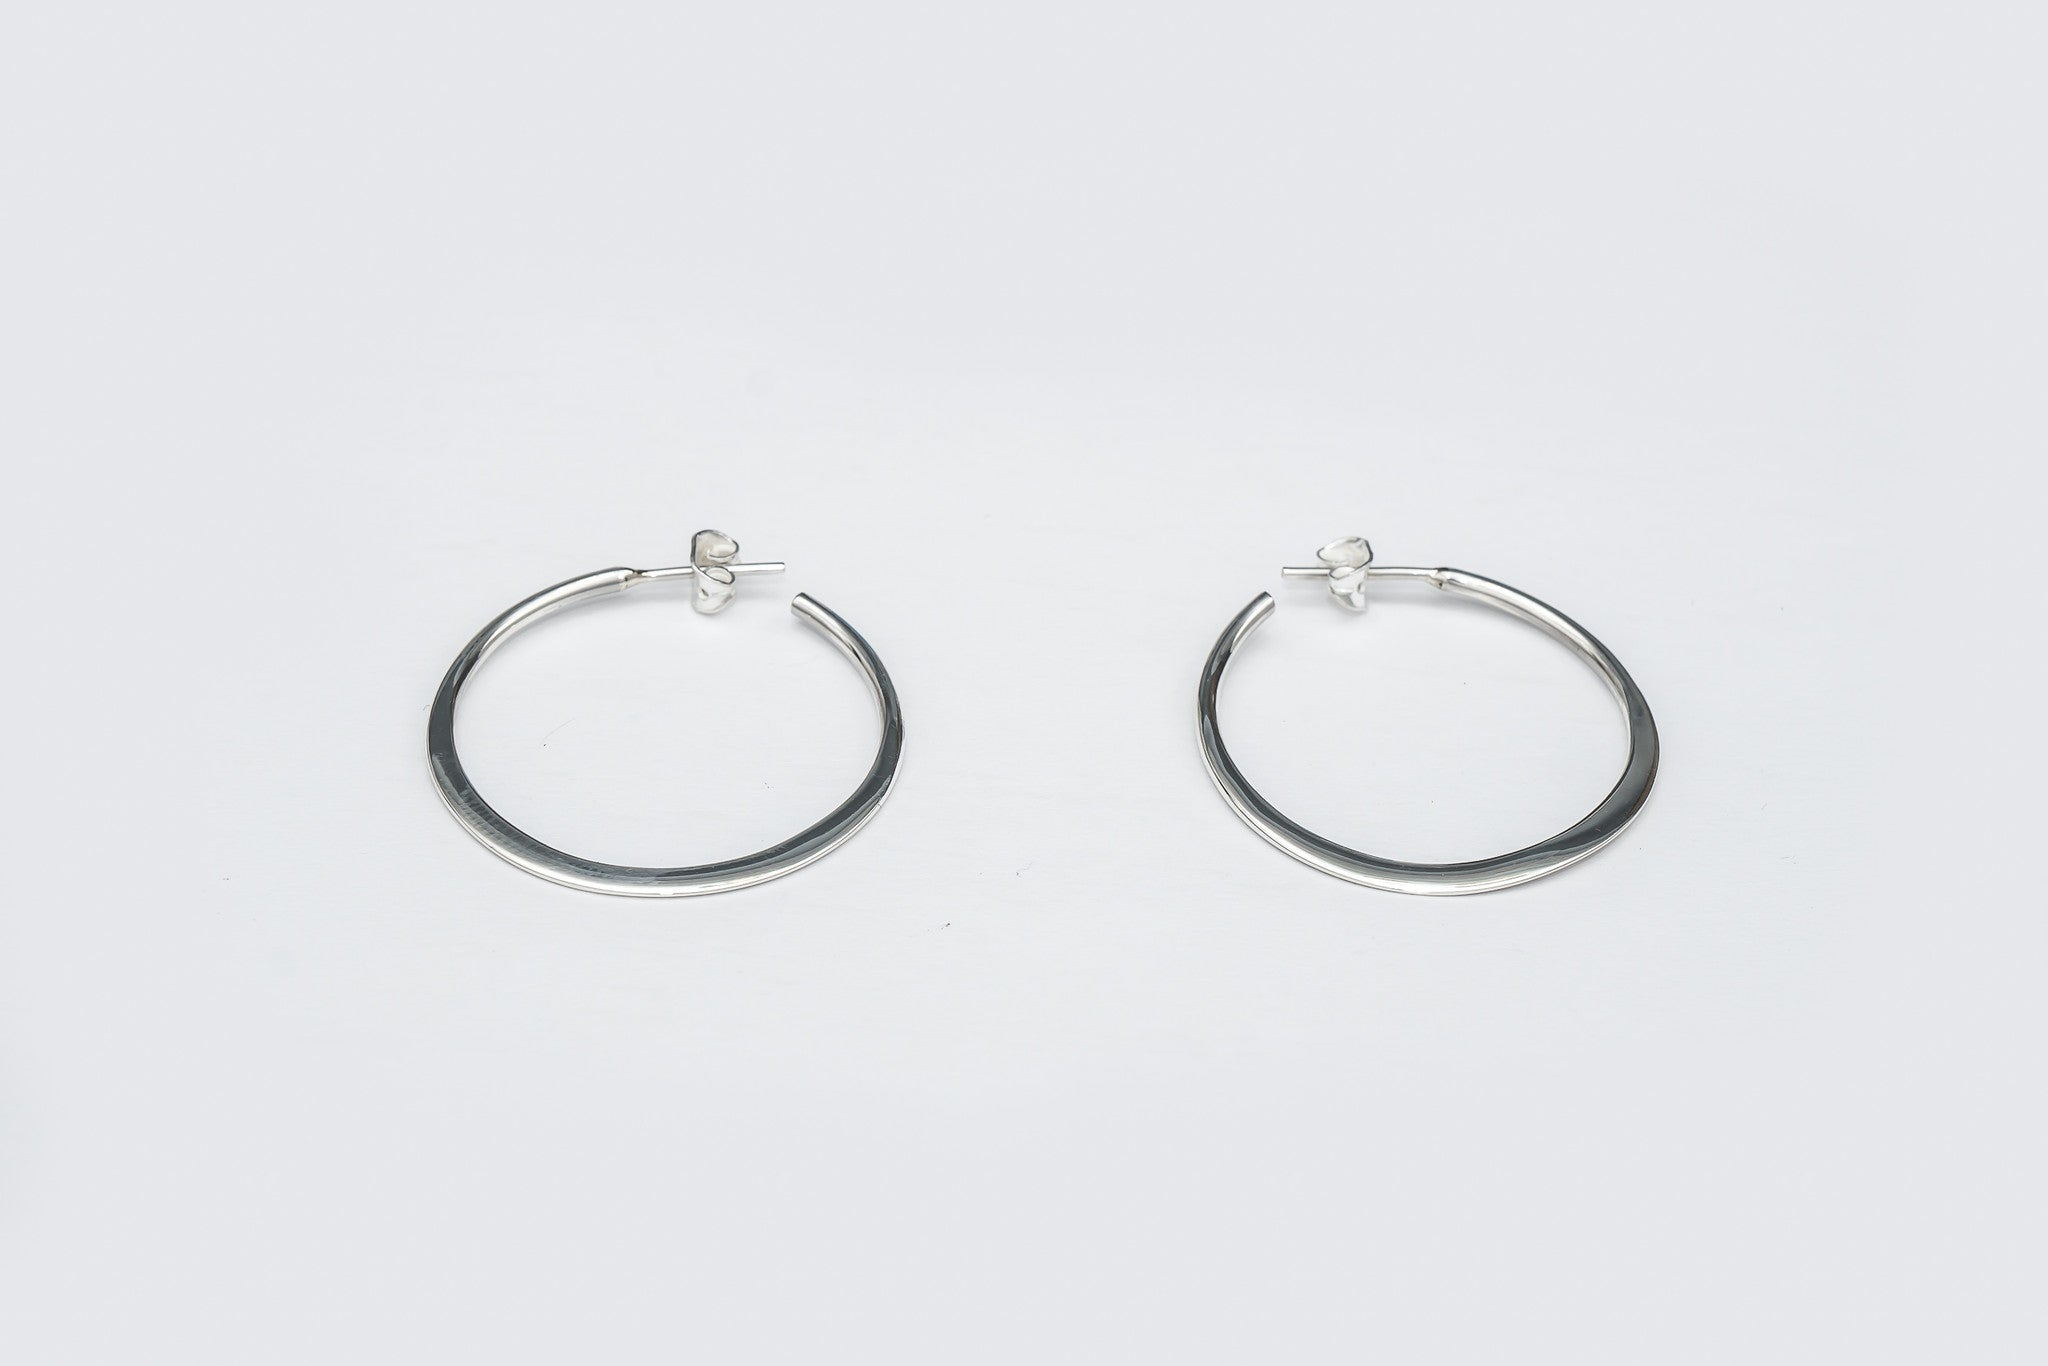 Sterling Silver .925 jewelry, jewellery, jewels, drop earrings, hoop earrings, stud earrings, pendants, bangles, bracelets, necklace, rings, sets, cufflinks Toronto, Ontario, Canada, Mexico, Mexican, handcrafts, handmade, artisans